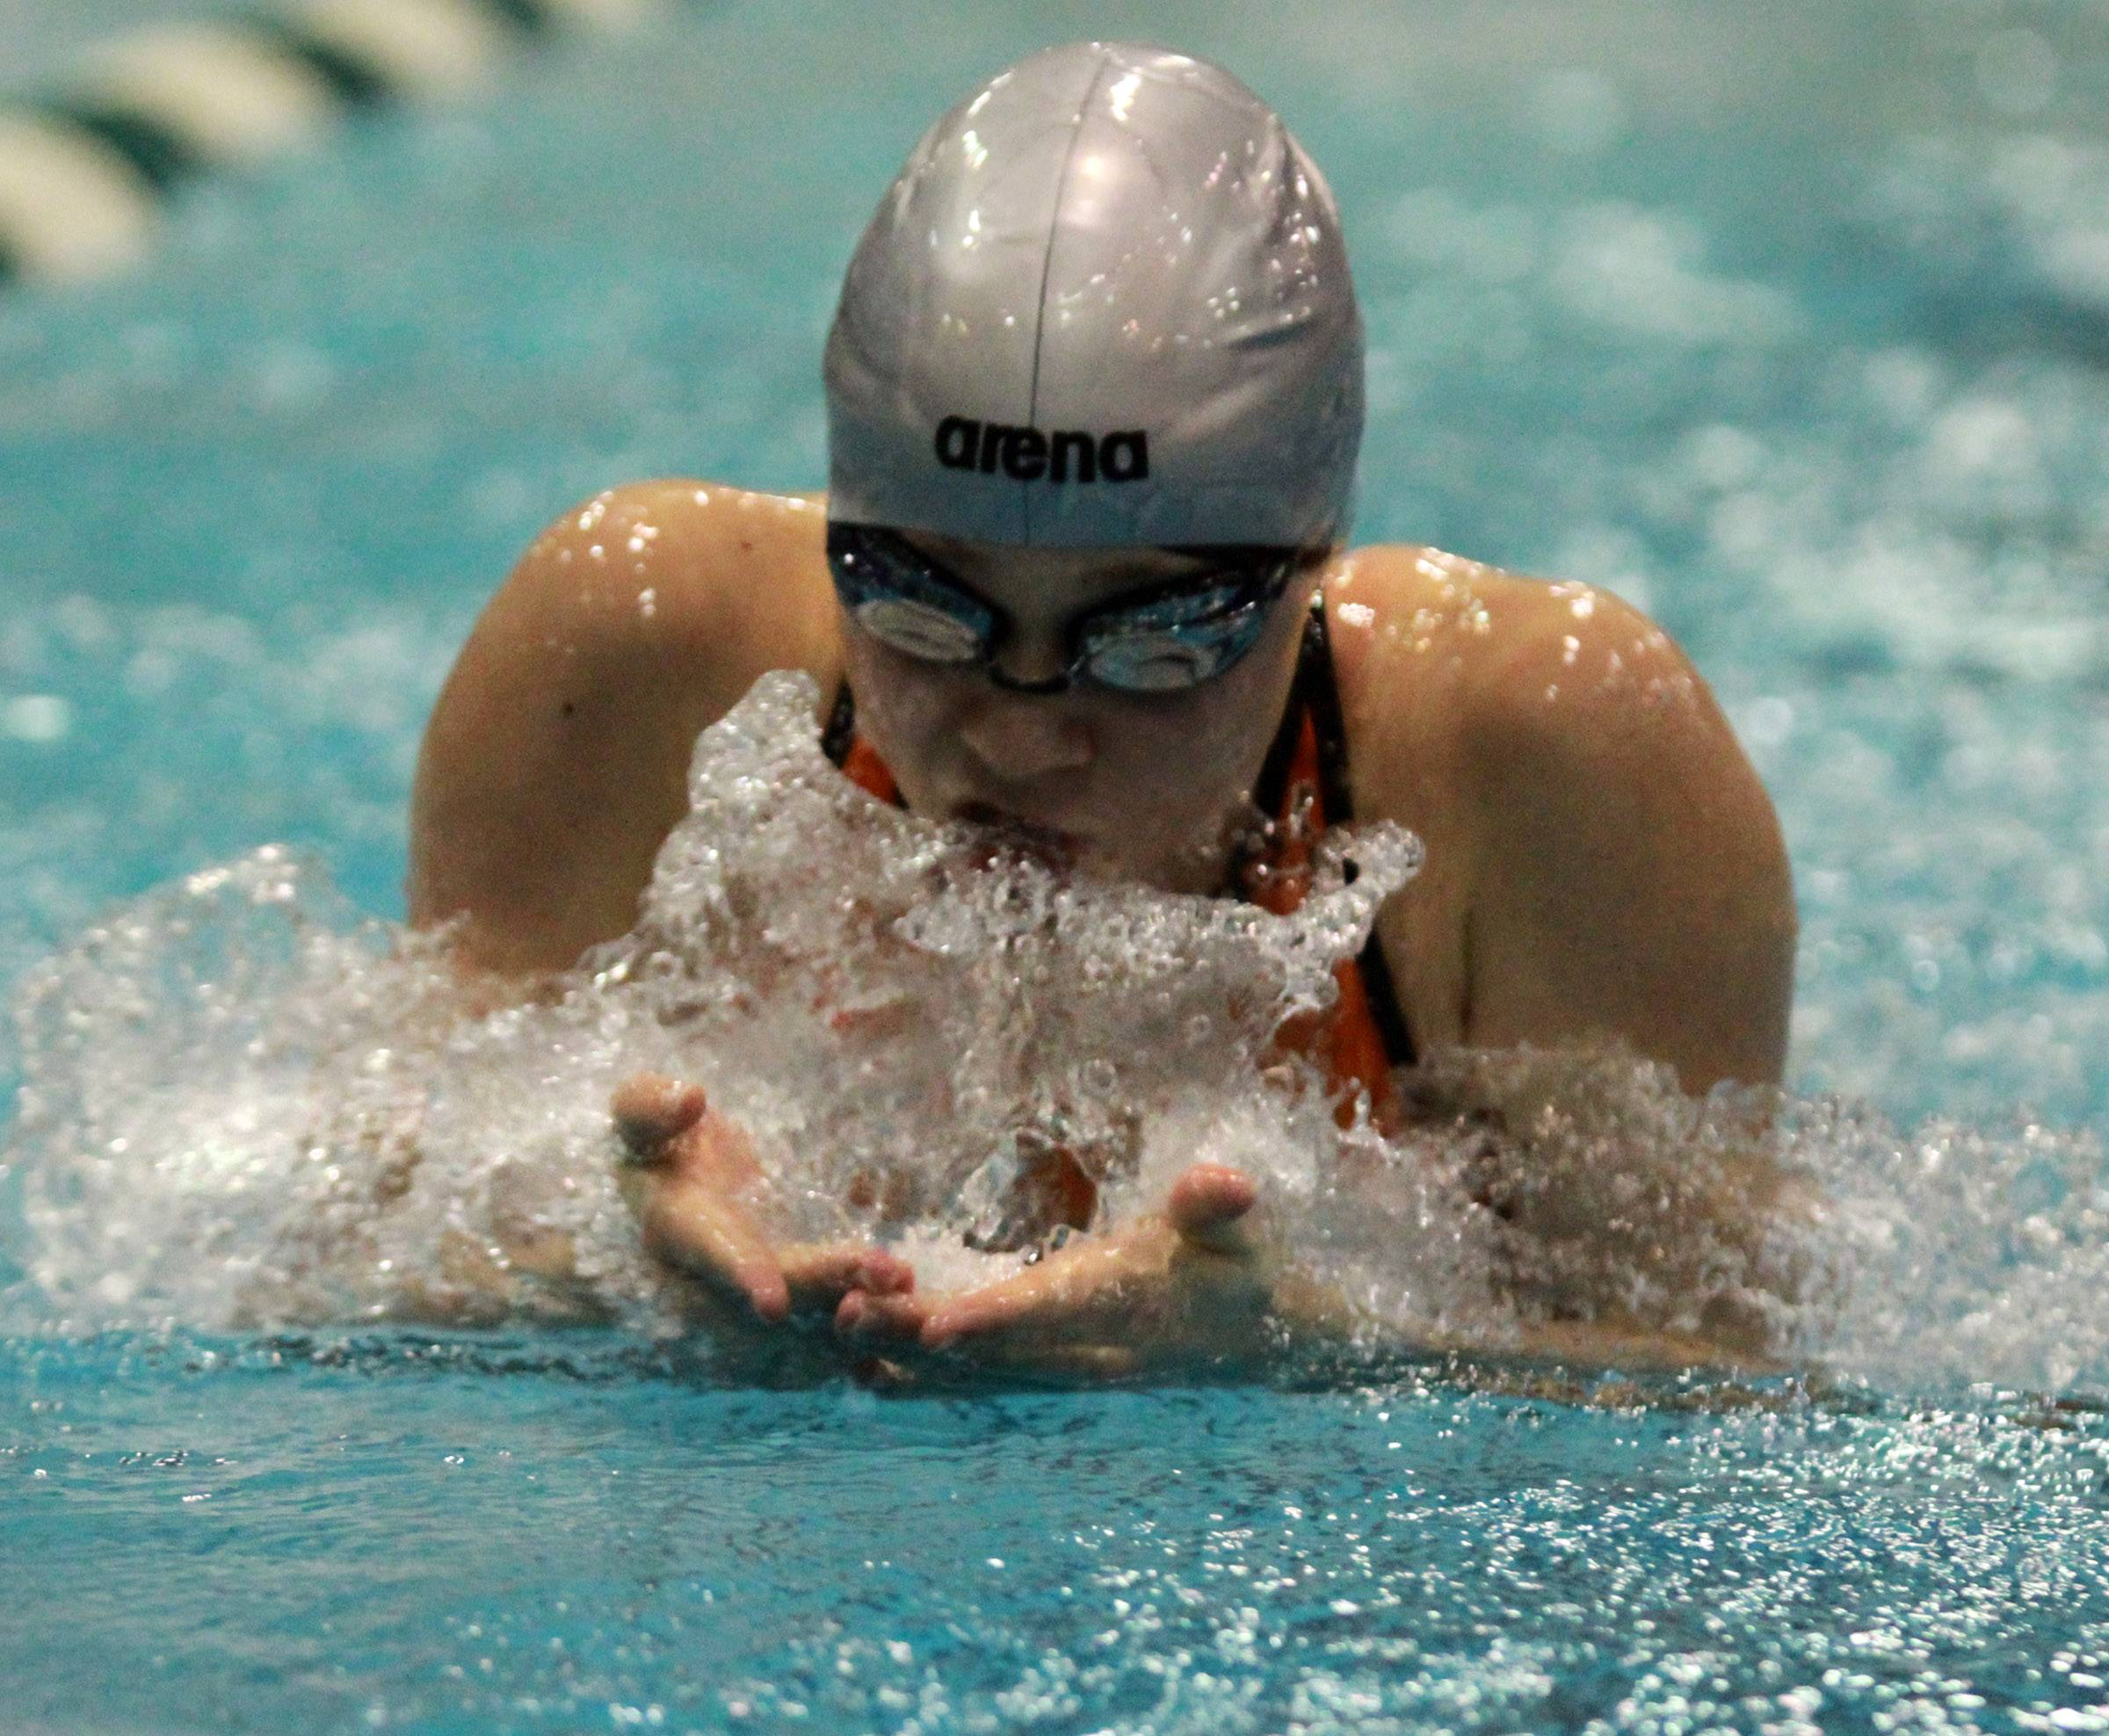 Libertyville's Macey Neubauer swims the breaststroke leg of the 200 medley relay during the girls swimming state finals last fall at New Trier. The quartet placed ninth, and Neuebauer is back for the Wildcats and coach Erik Rogers this fall.